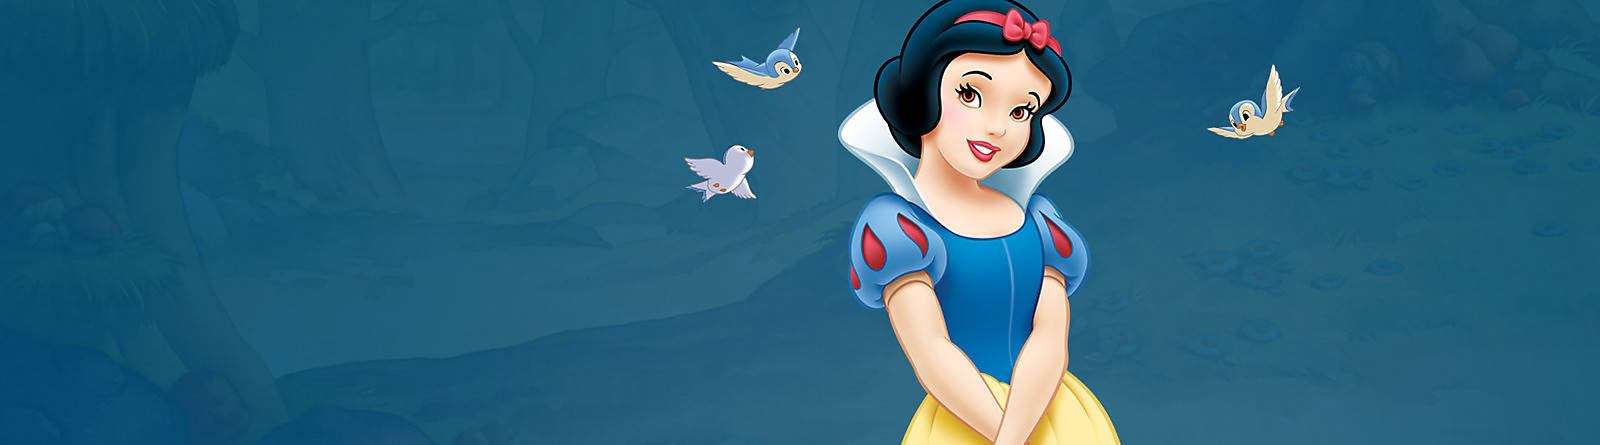 Snow White and the Seven Dwarfs Whistle while you discover our Snow White costumes, figurines, collectibles and more